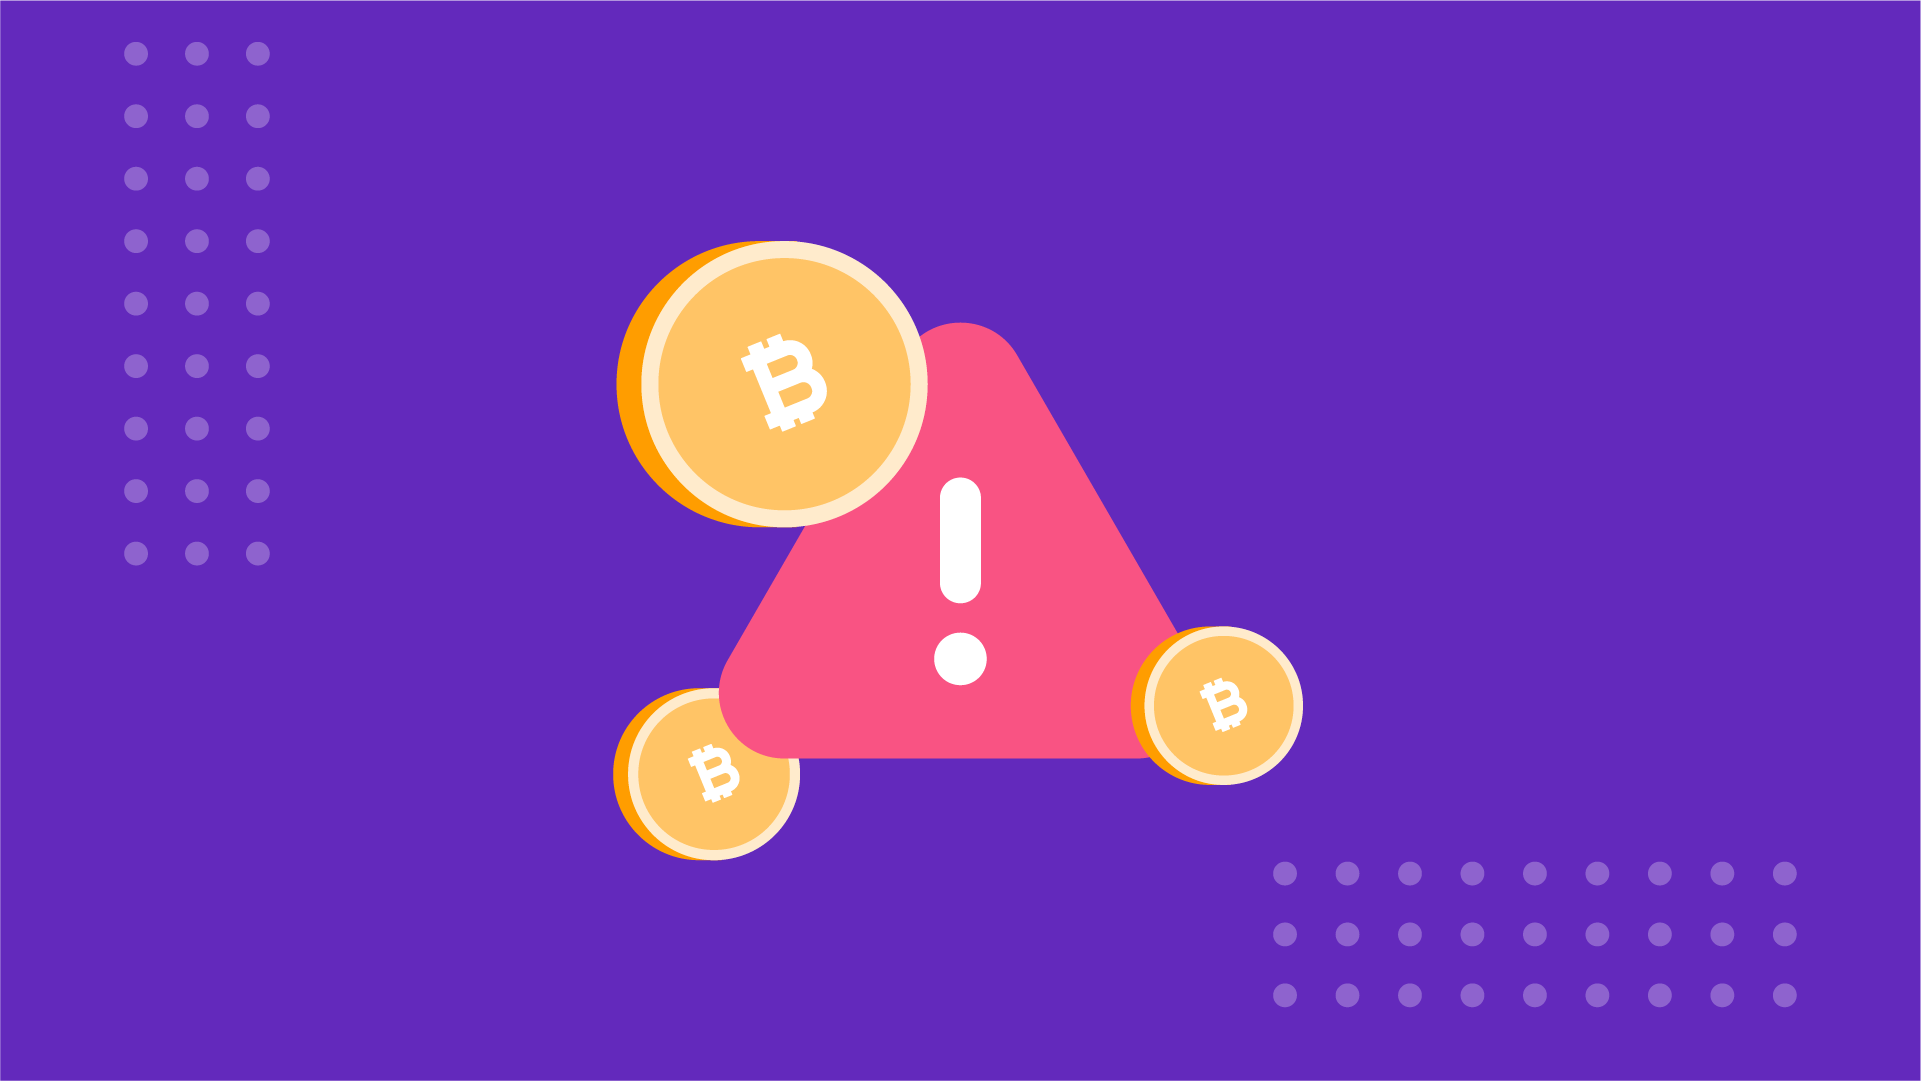 Discover the 4 reasons why investing in cryptocurrency is risky